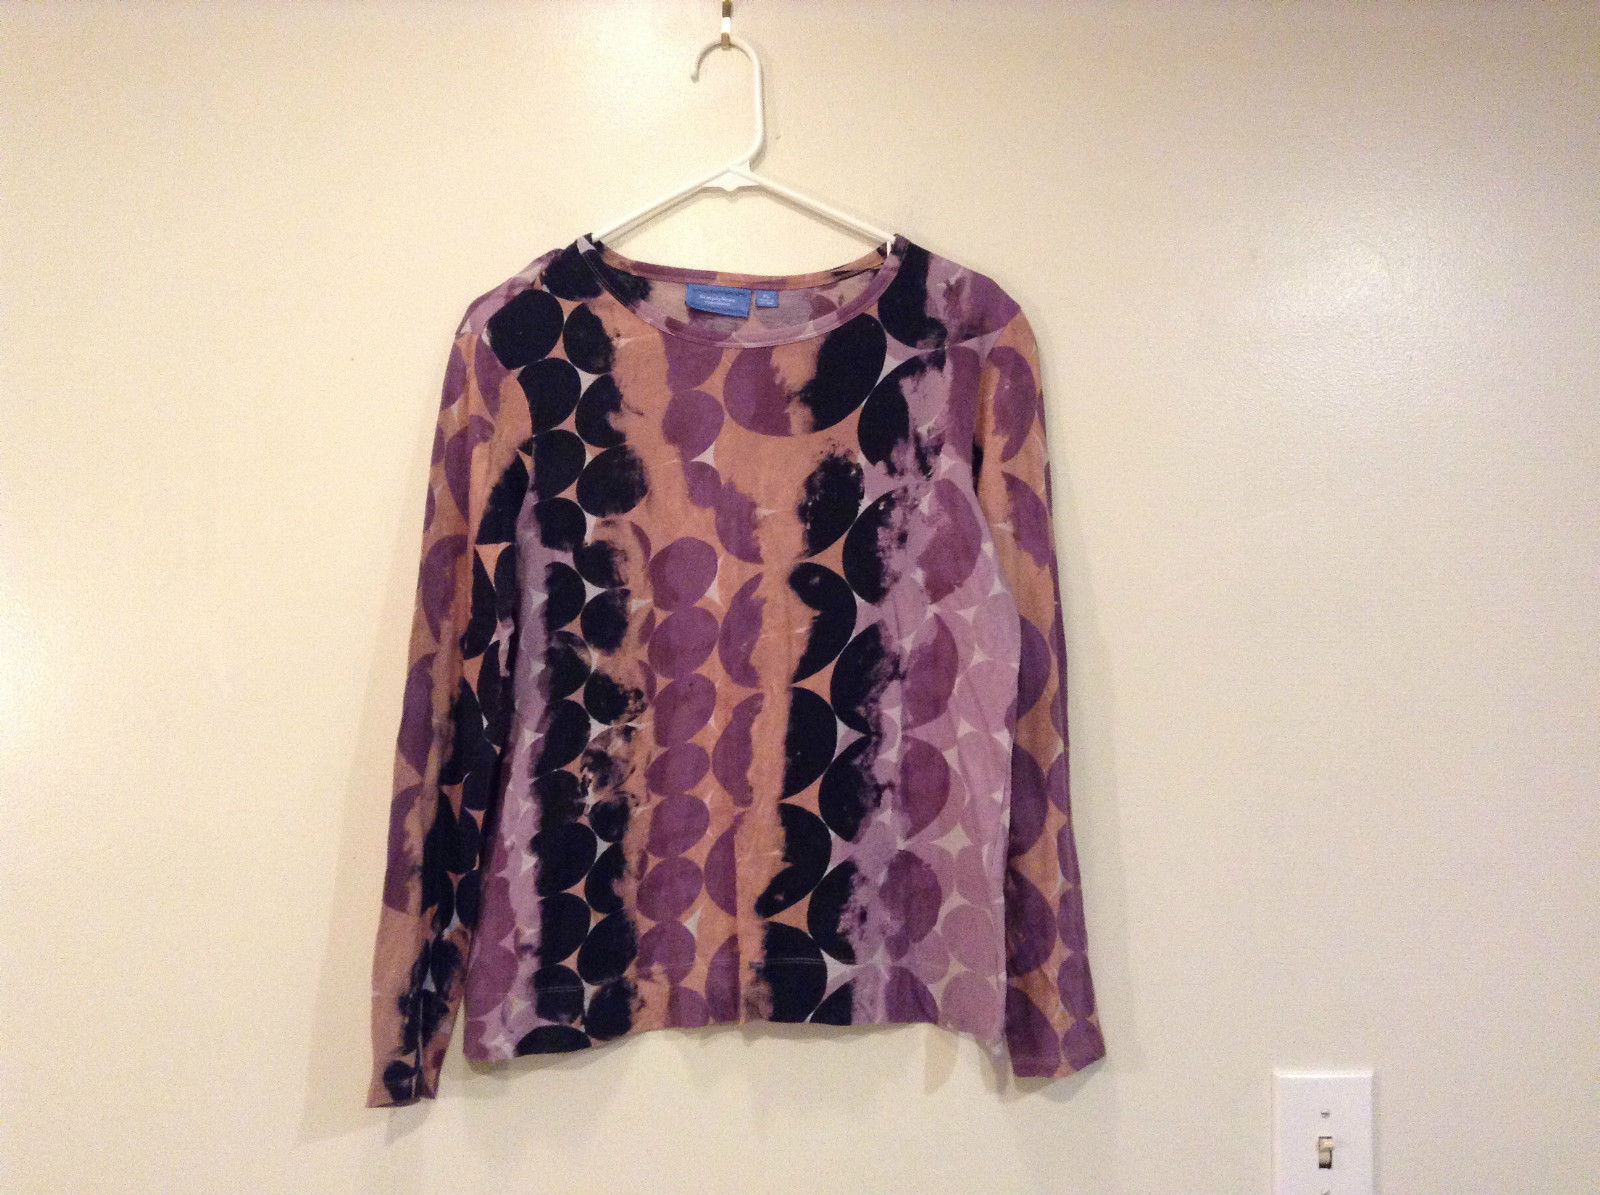 Simply Vera Vera Wang Long Sleeve Violet Black Beige Circles Cotton Top Size PL